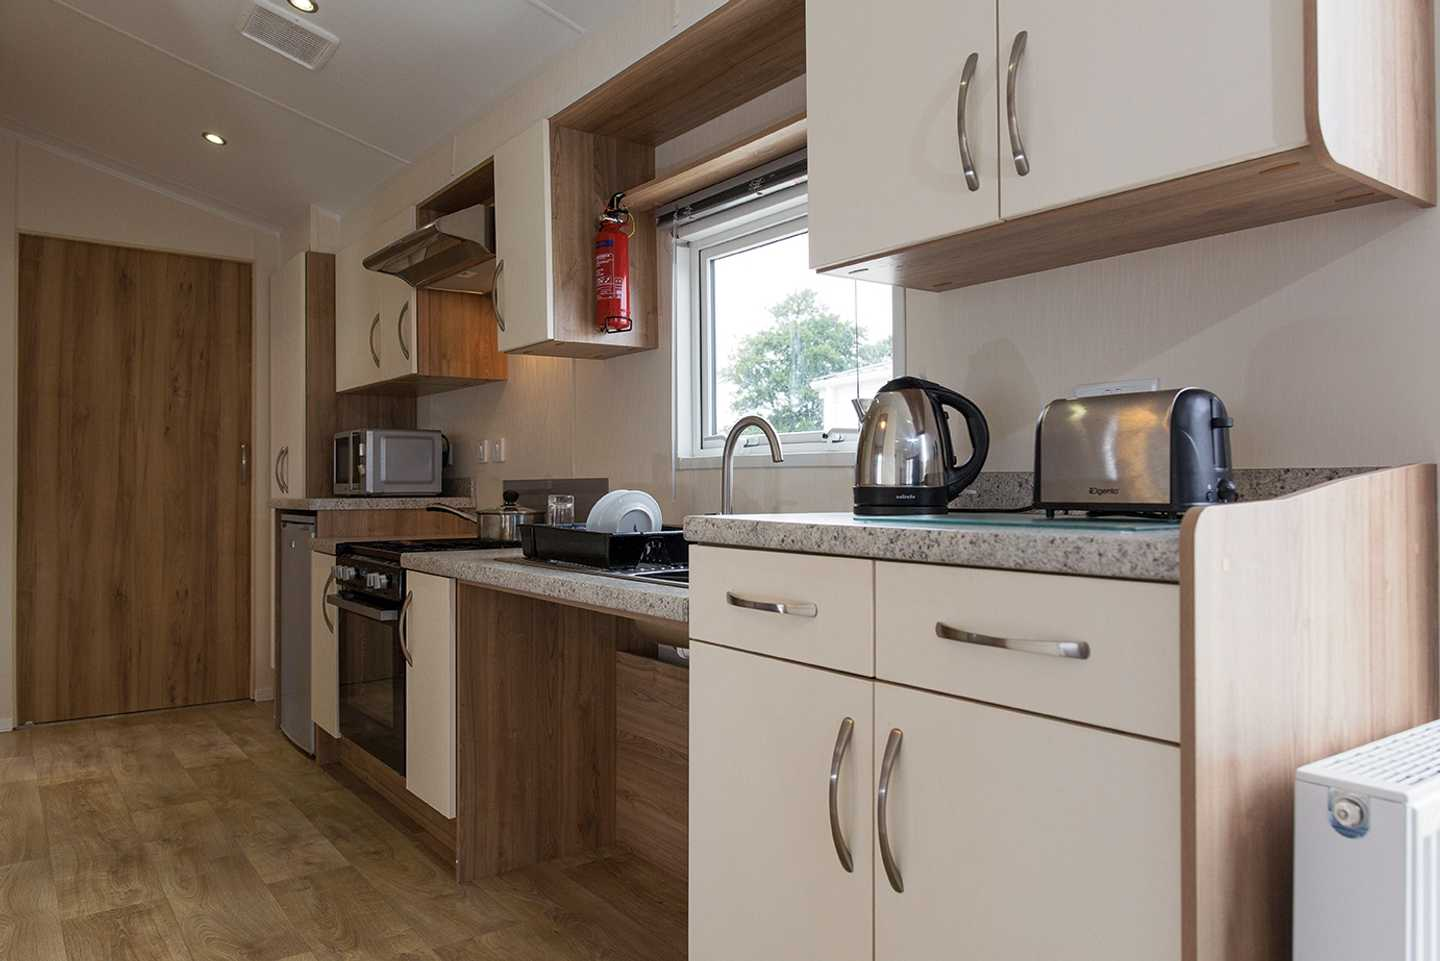 An Adapted caravan kitchen with cooker, kettle and toaster